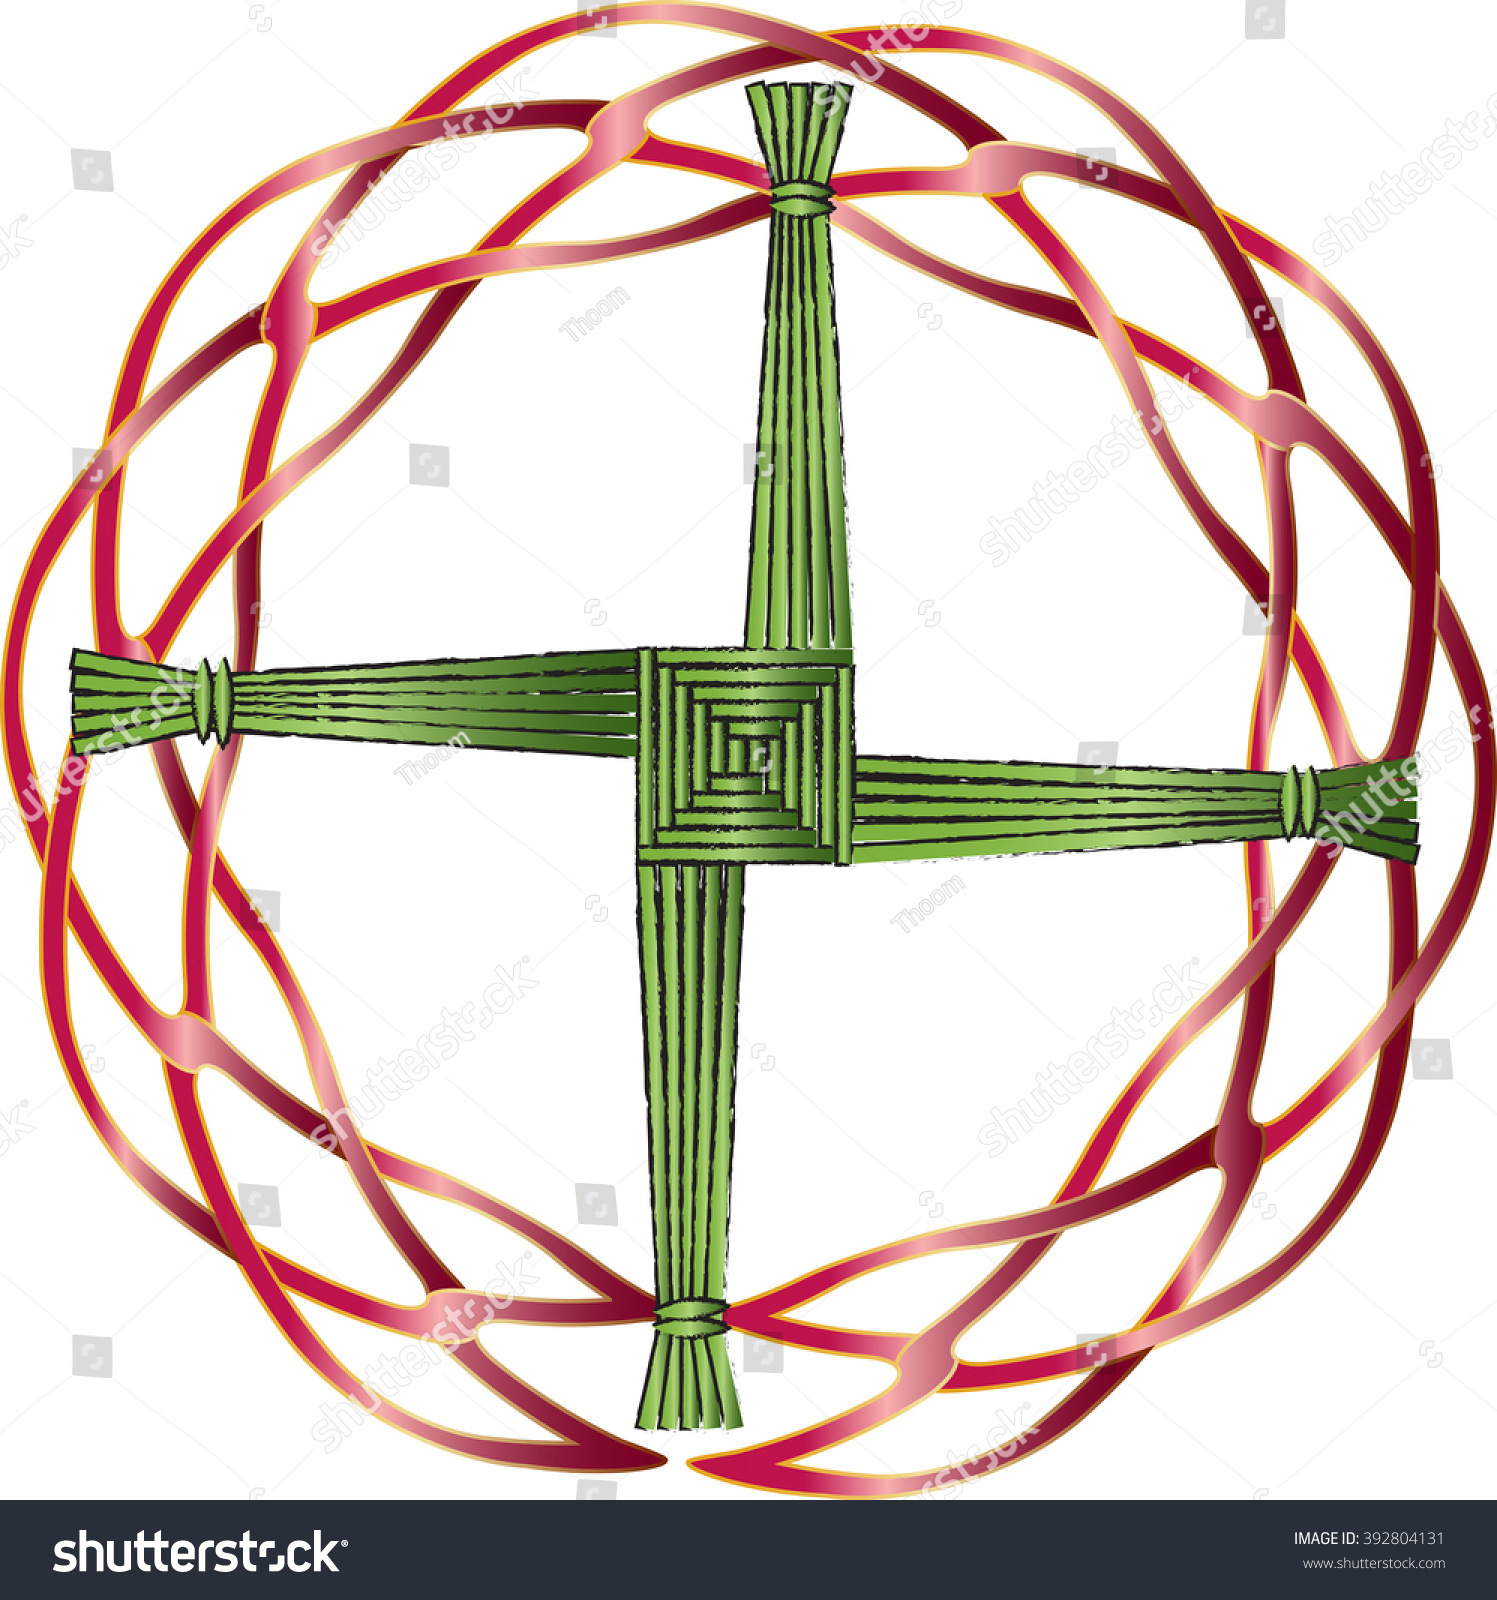 St brigids cross made straw protect stock vector 392804131 st brigids cross made of straw to protect the house from evil and fire a biocorpaavc Gallery